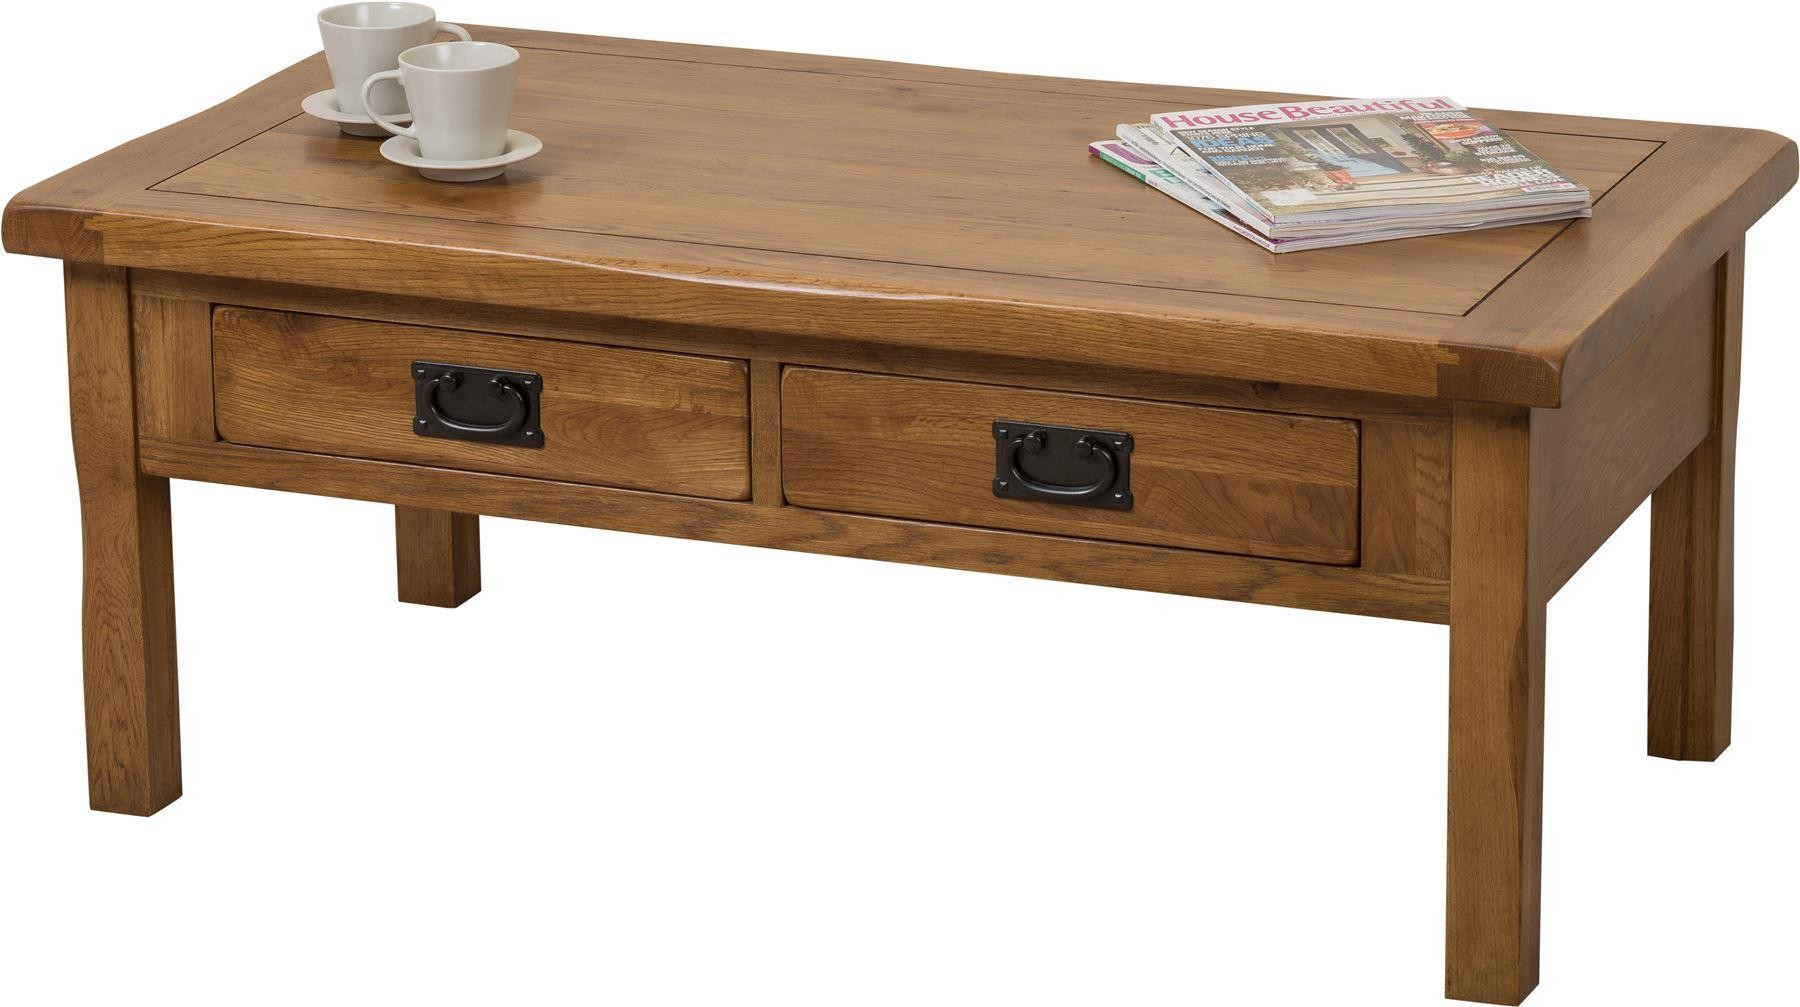 Cotswold Rustic Solid Oak Coffee Table [4 drawer]